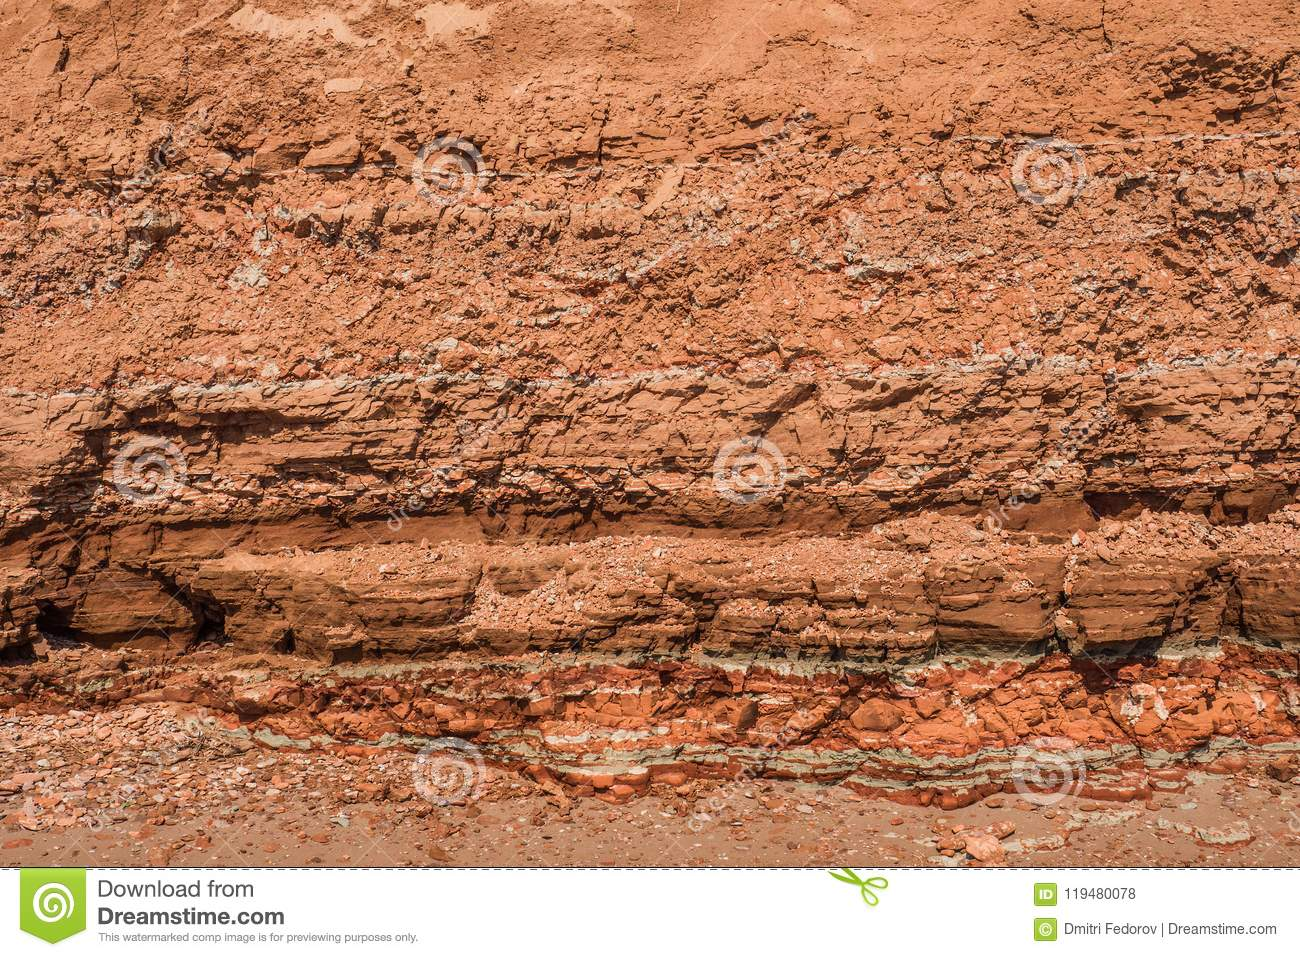 Rocky clay texture on a cliff